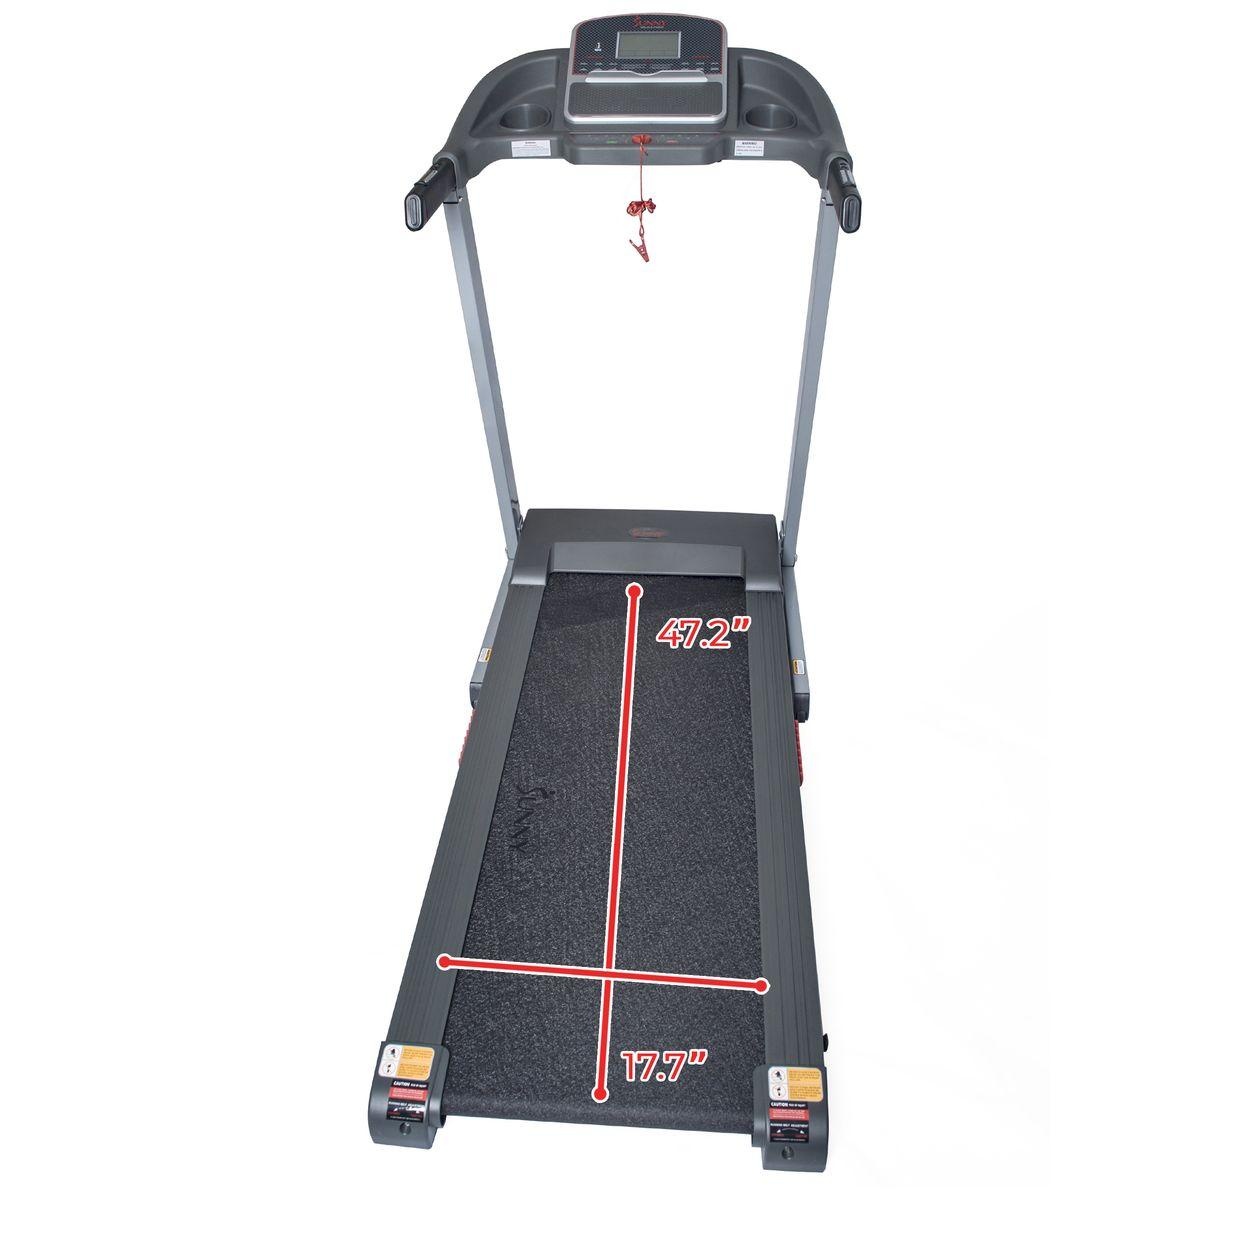 sunny-health-fitness-treadmills-electric-treadmill-manual-incline-USB-charging-function-SF-T7860-tread-deck